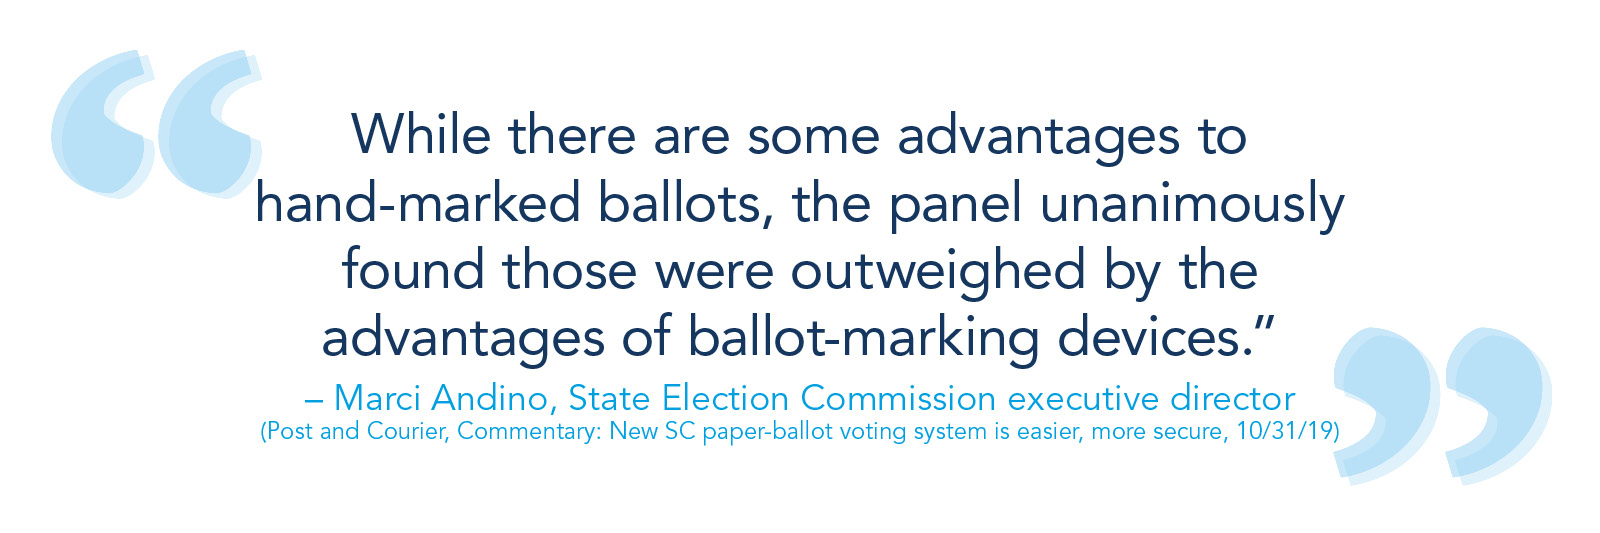 """While there are some advantages to hand-marked ballots, the panel unanimously found those were outweighed by the advantages of ballot-marking devices."" -- Marci Andino, State Election Commission executive director. (Post and Courier, Commentary: New SC paper-ballot voting system is easier, more secure, 10/31/19)"